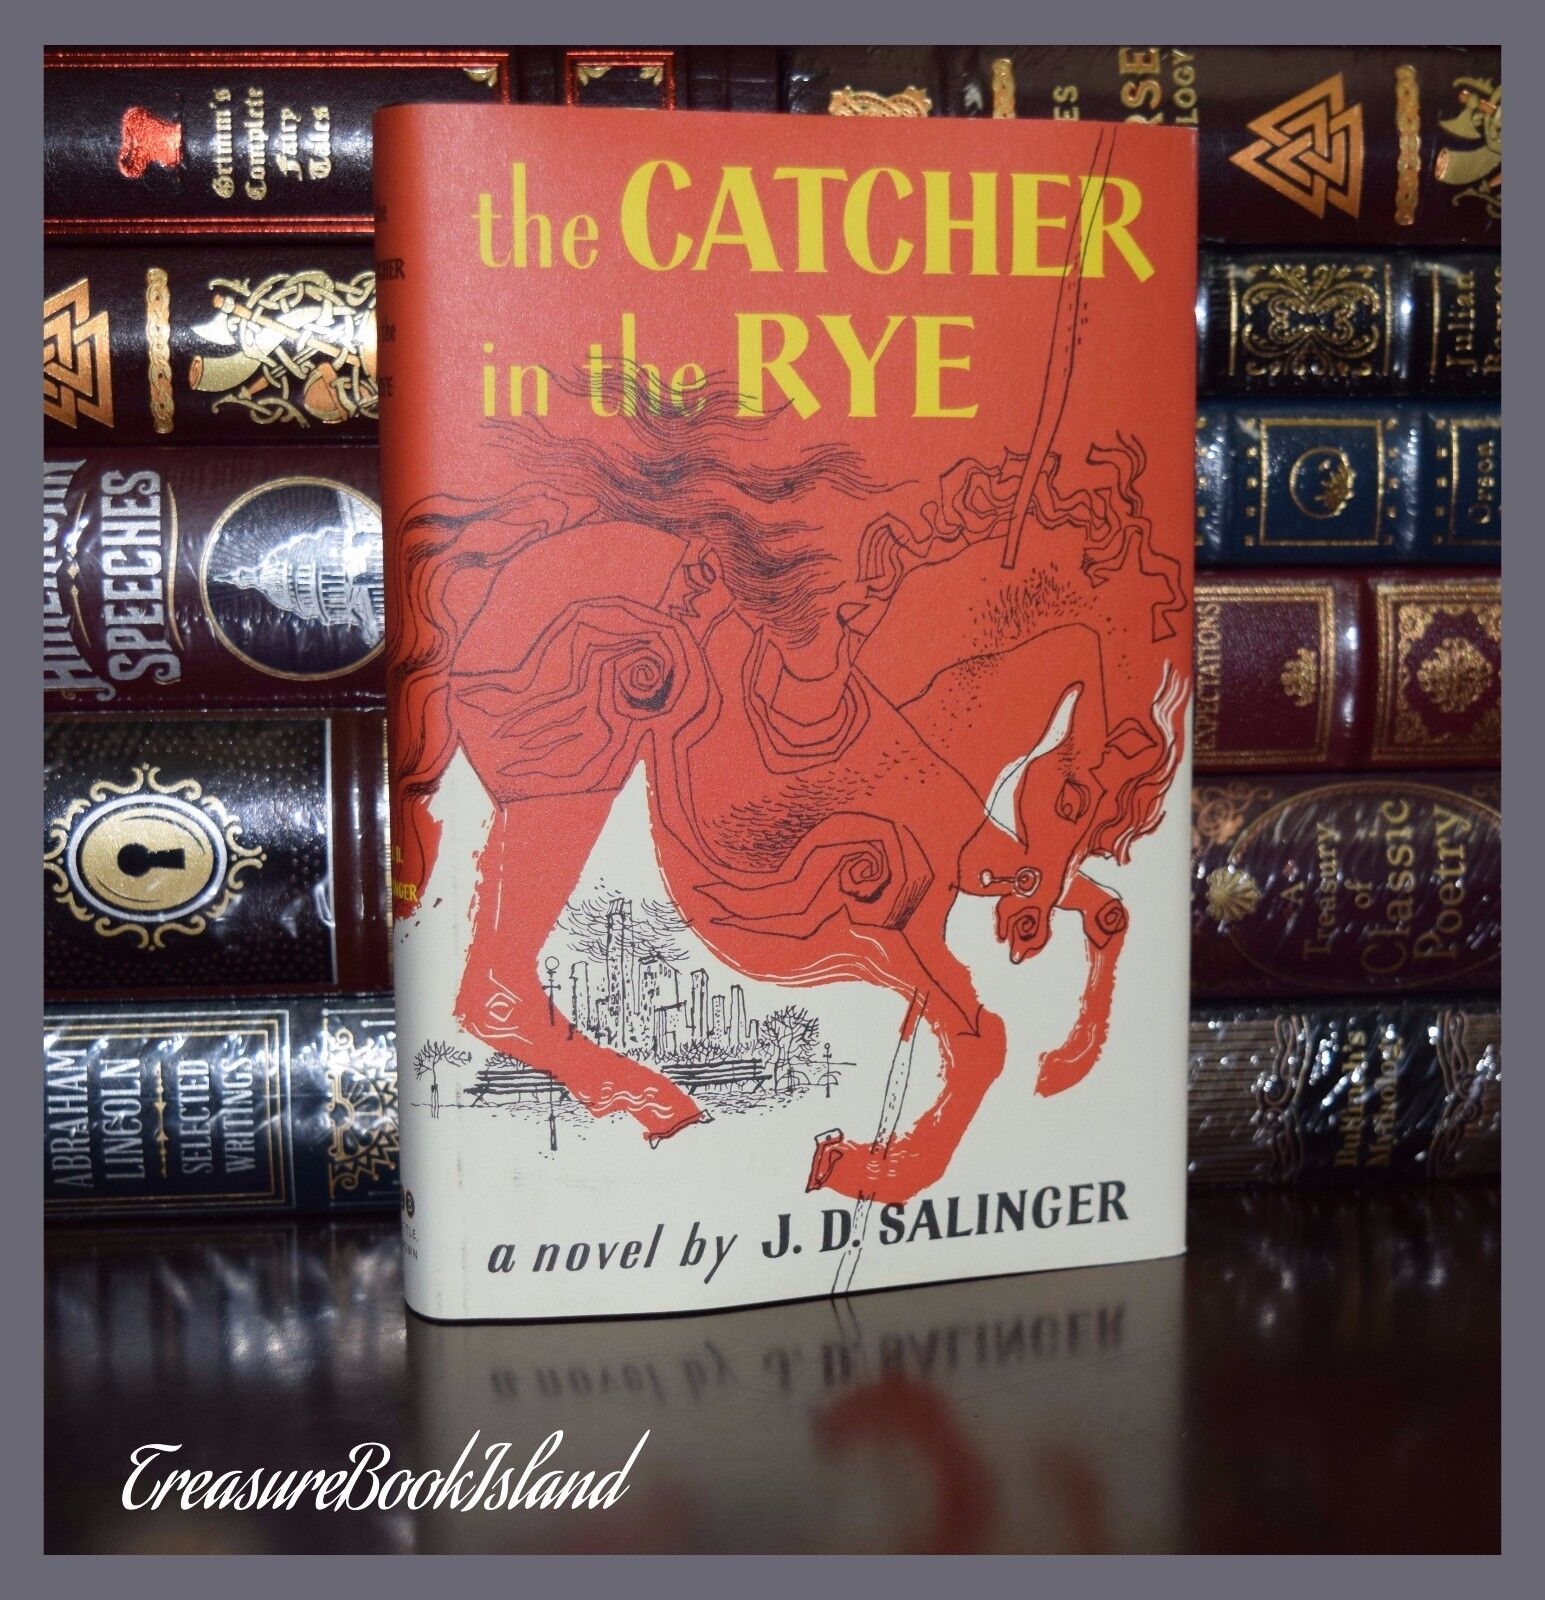 the role of dialogue in the catcher in the rye a novel by j d salinger